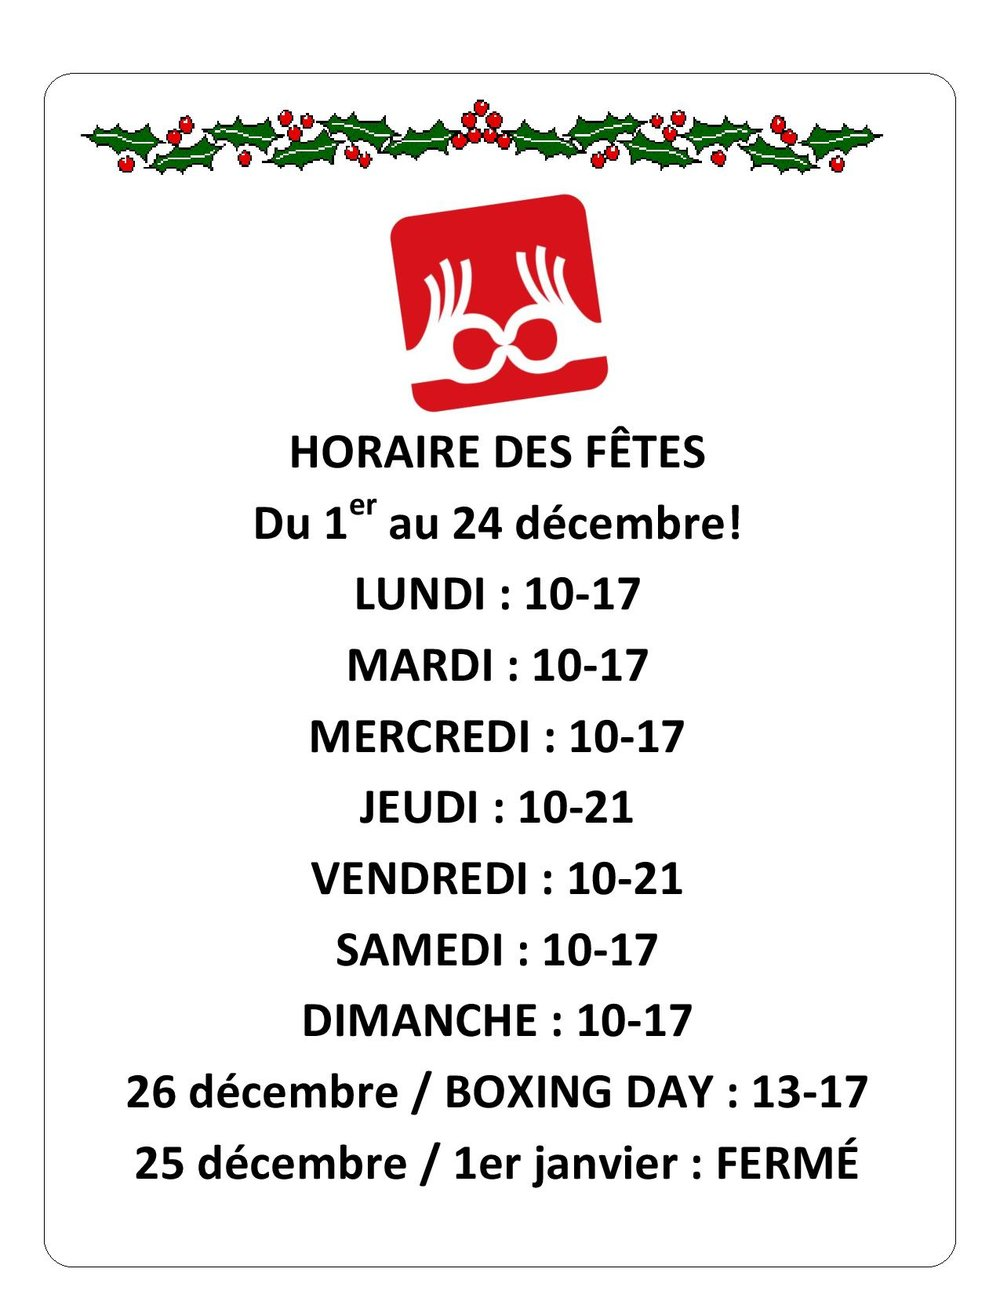 17-12-01HoraireDesFetes-page-001.jpg